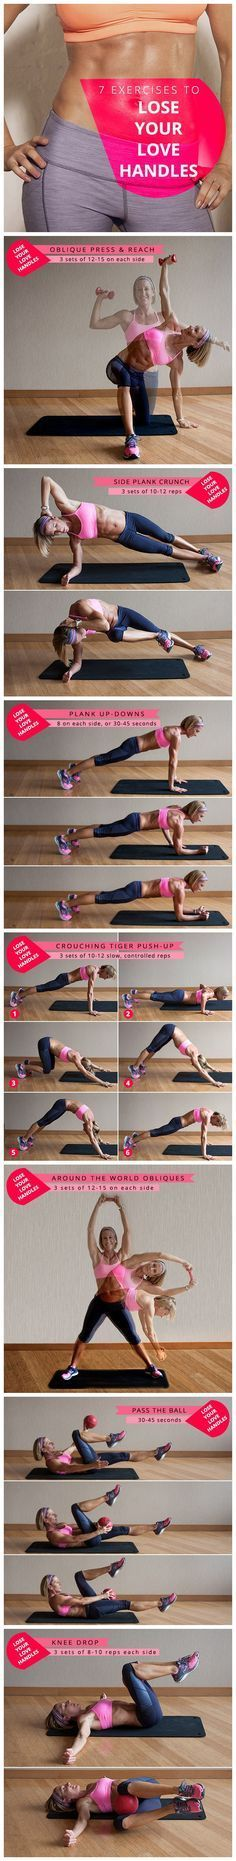 How To Lose Love Handles?; Exercises and Diet Plan To Lose Excess Fat Love…